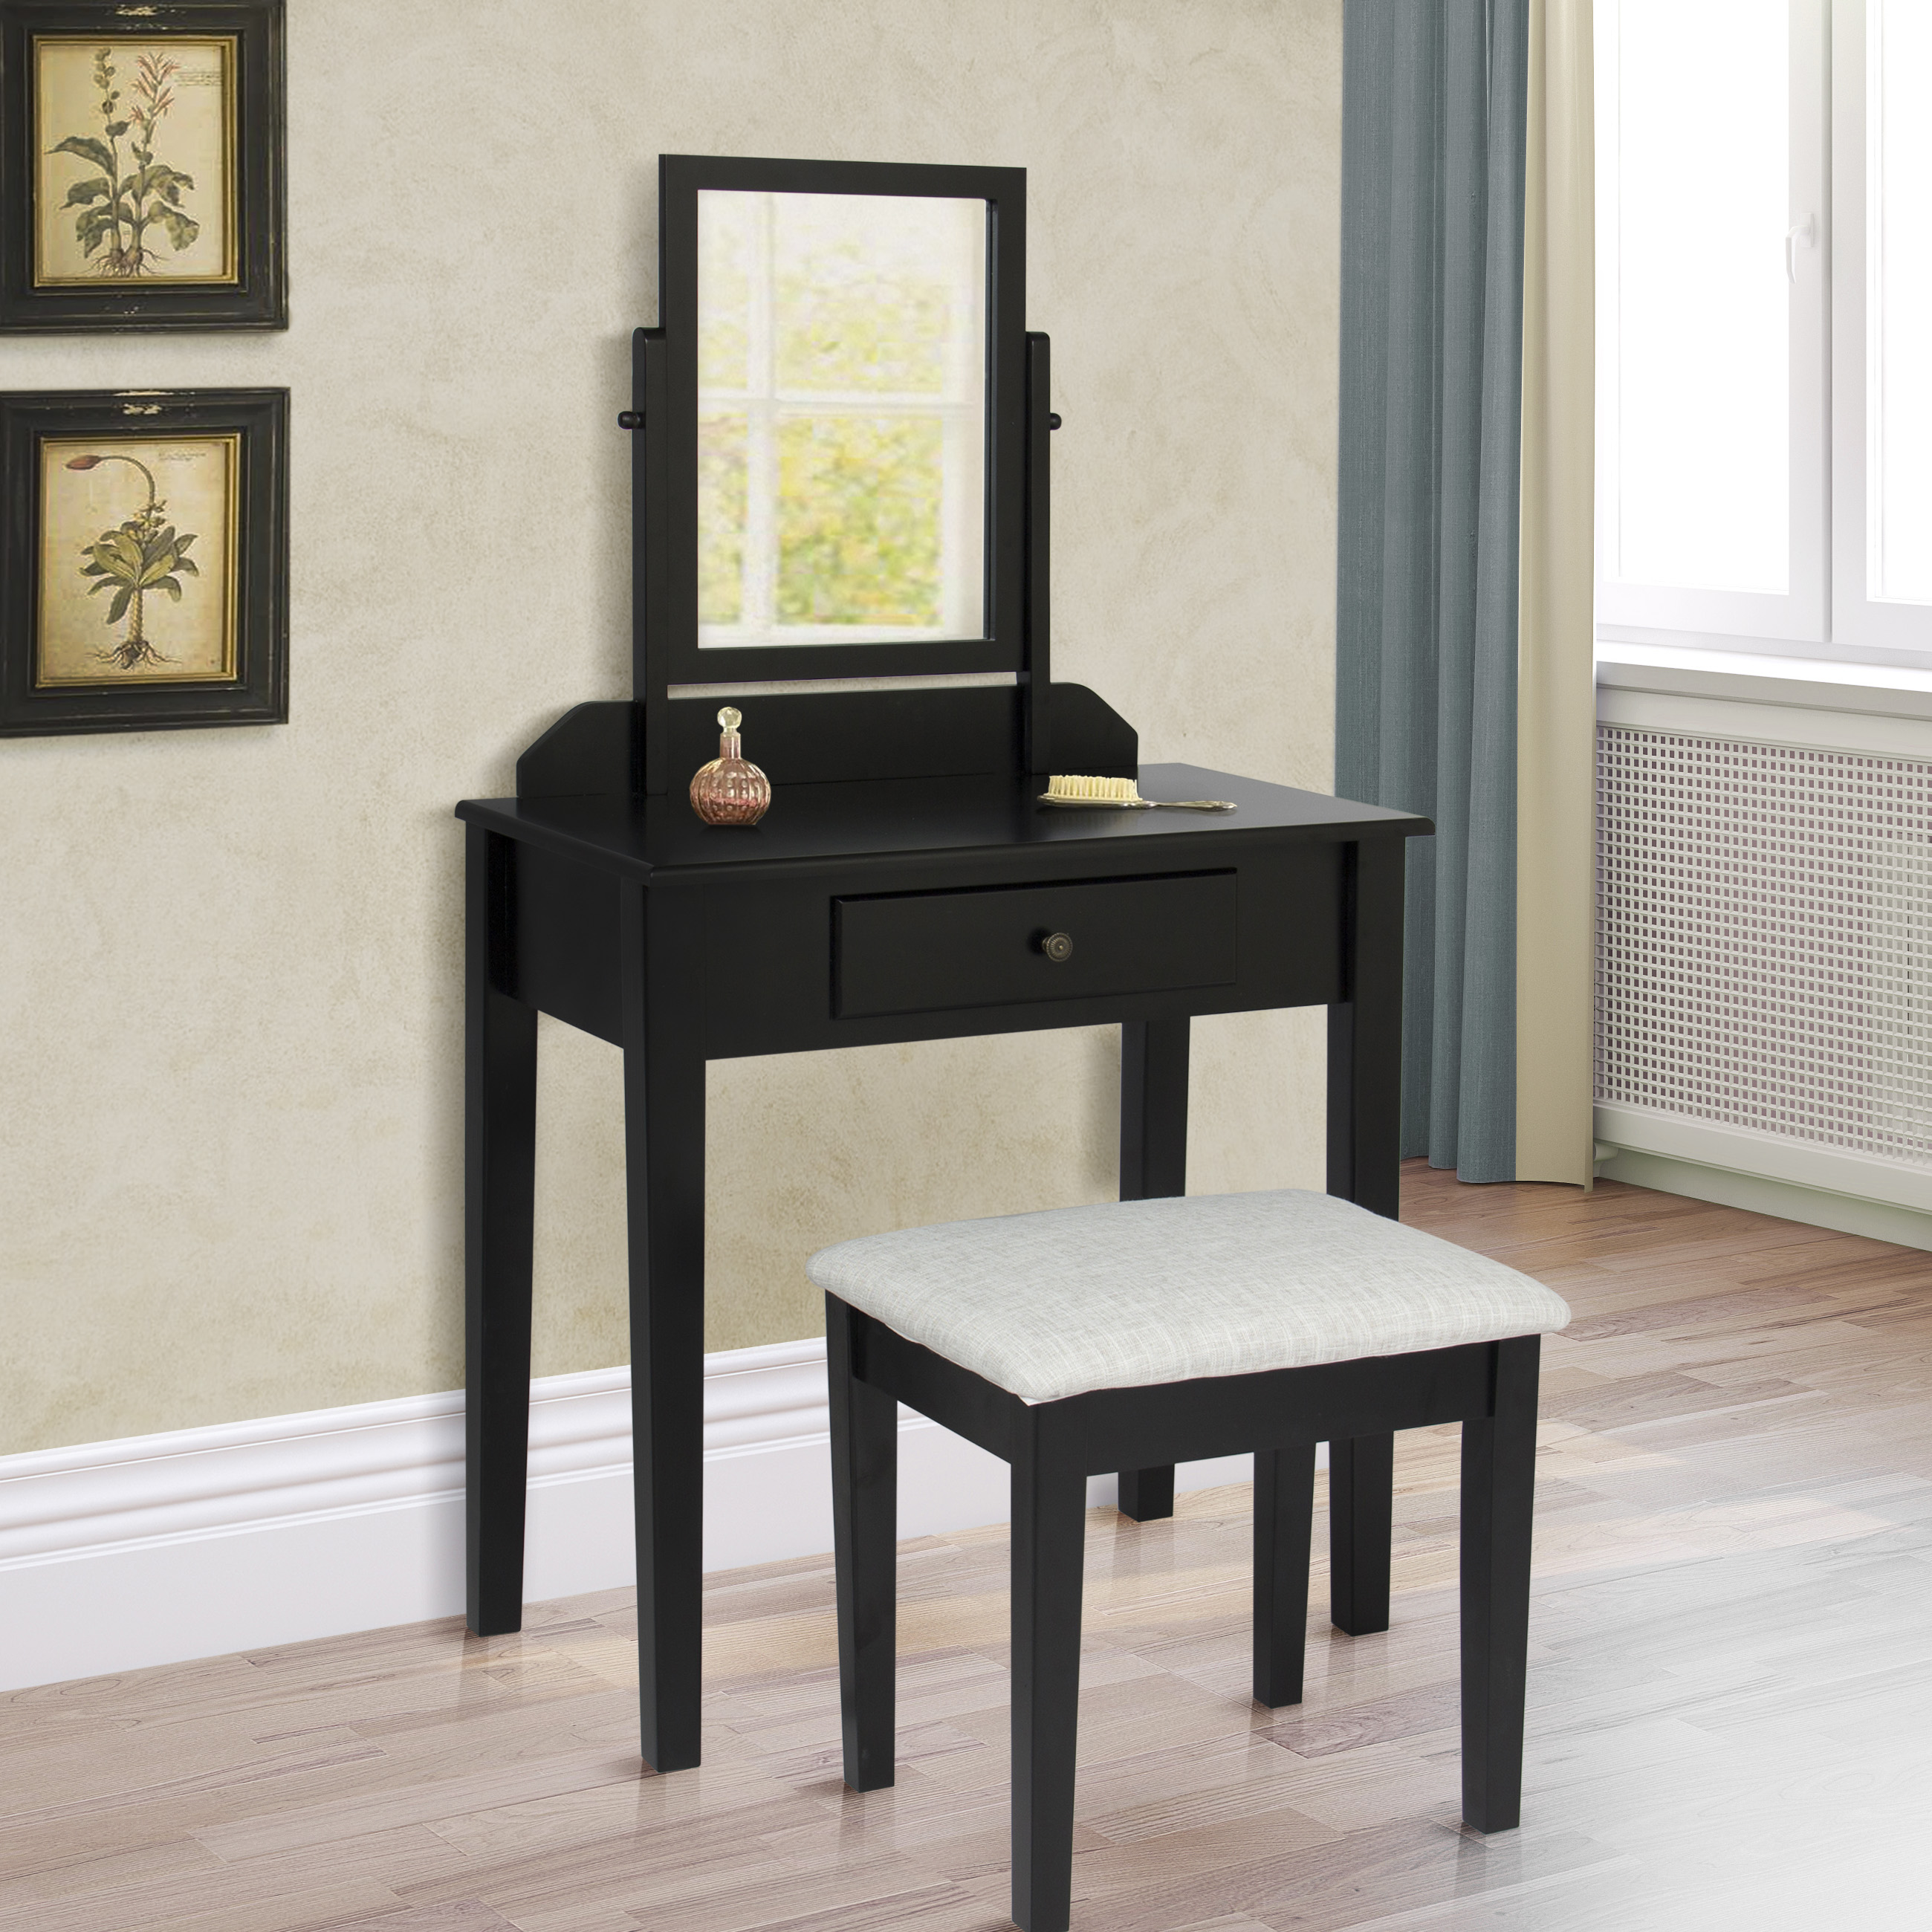 Best Choice Products Bathroom Vanity Table Set W/ Stool Makeup ...